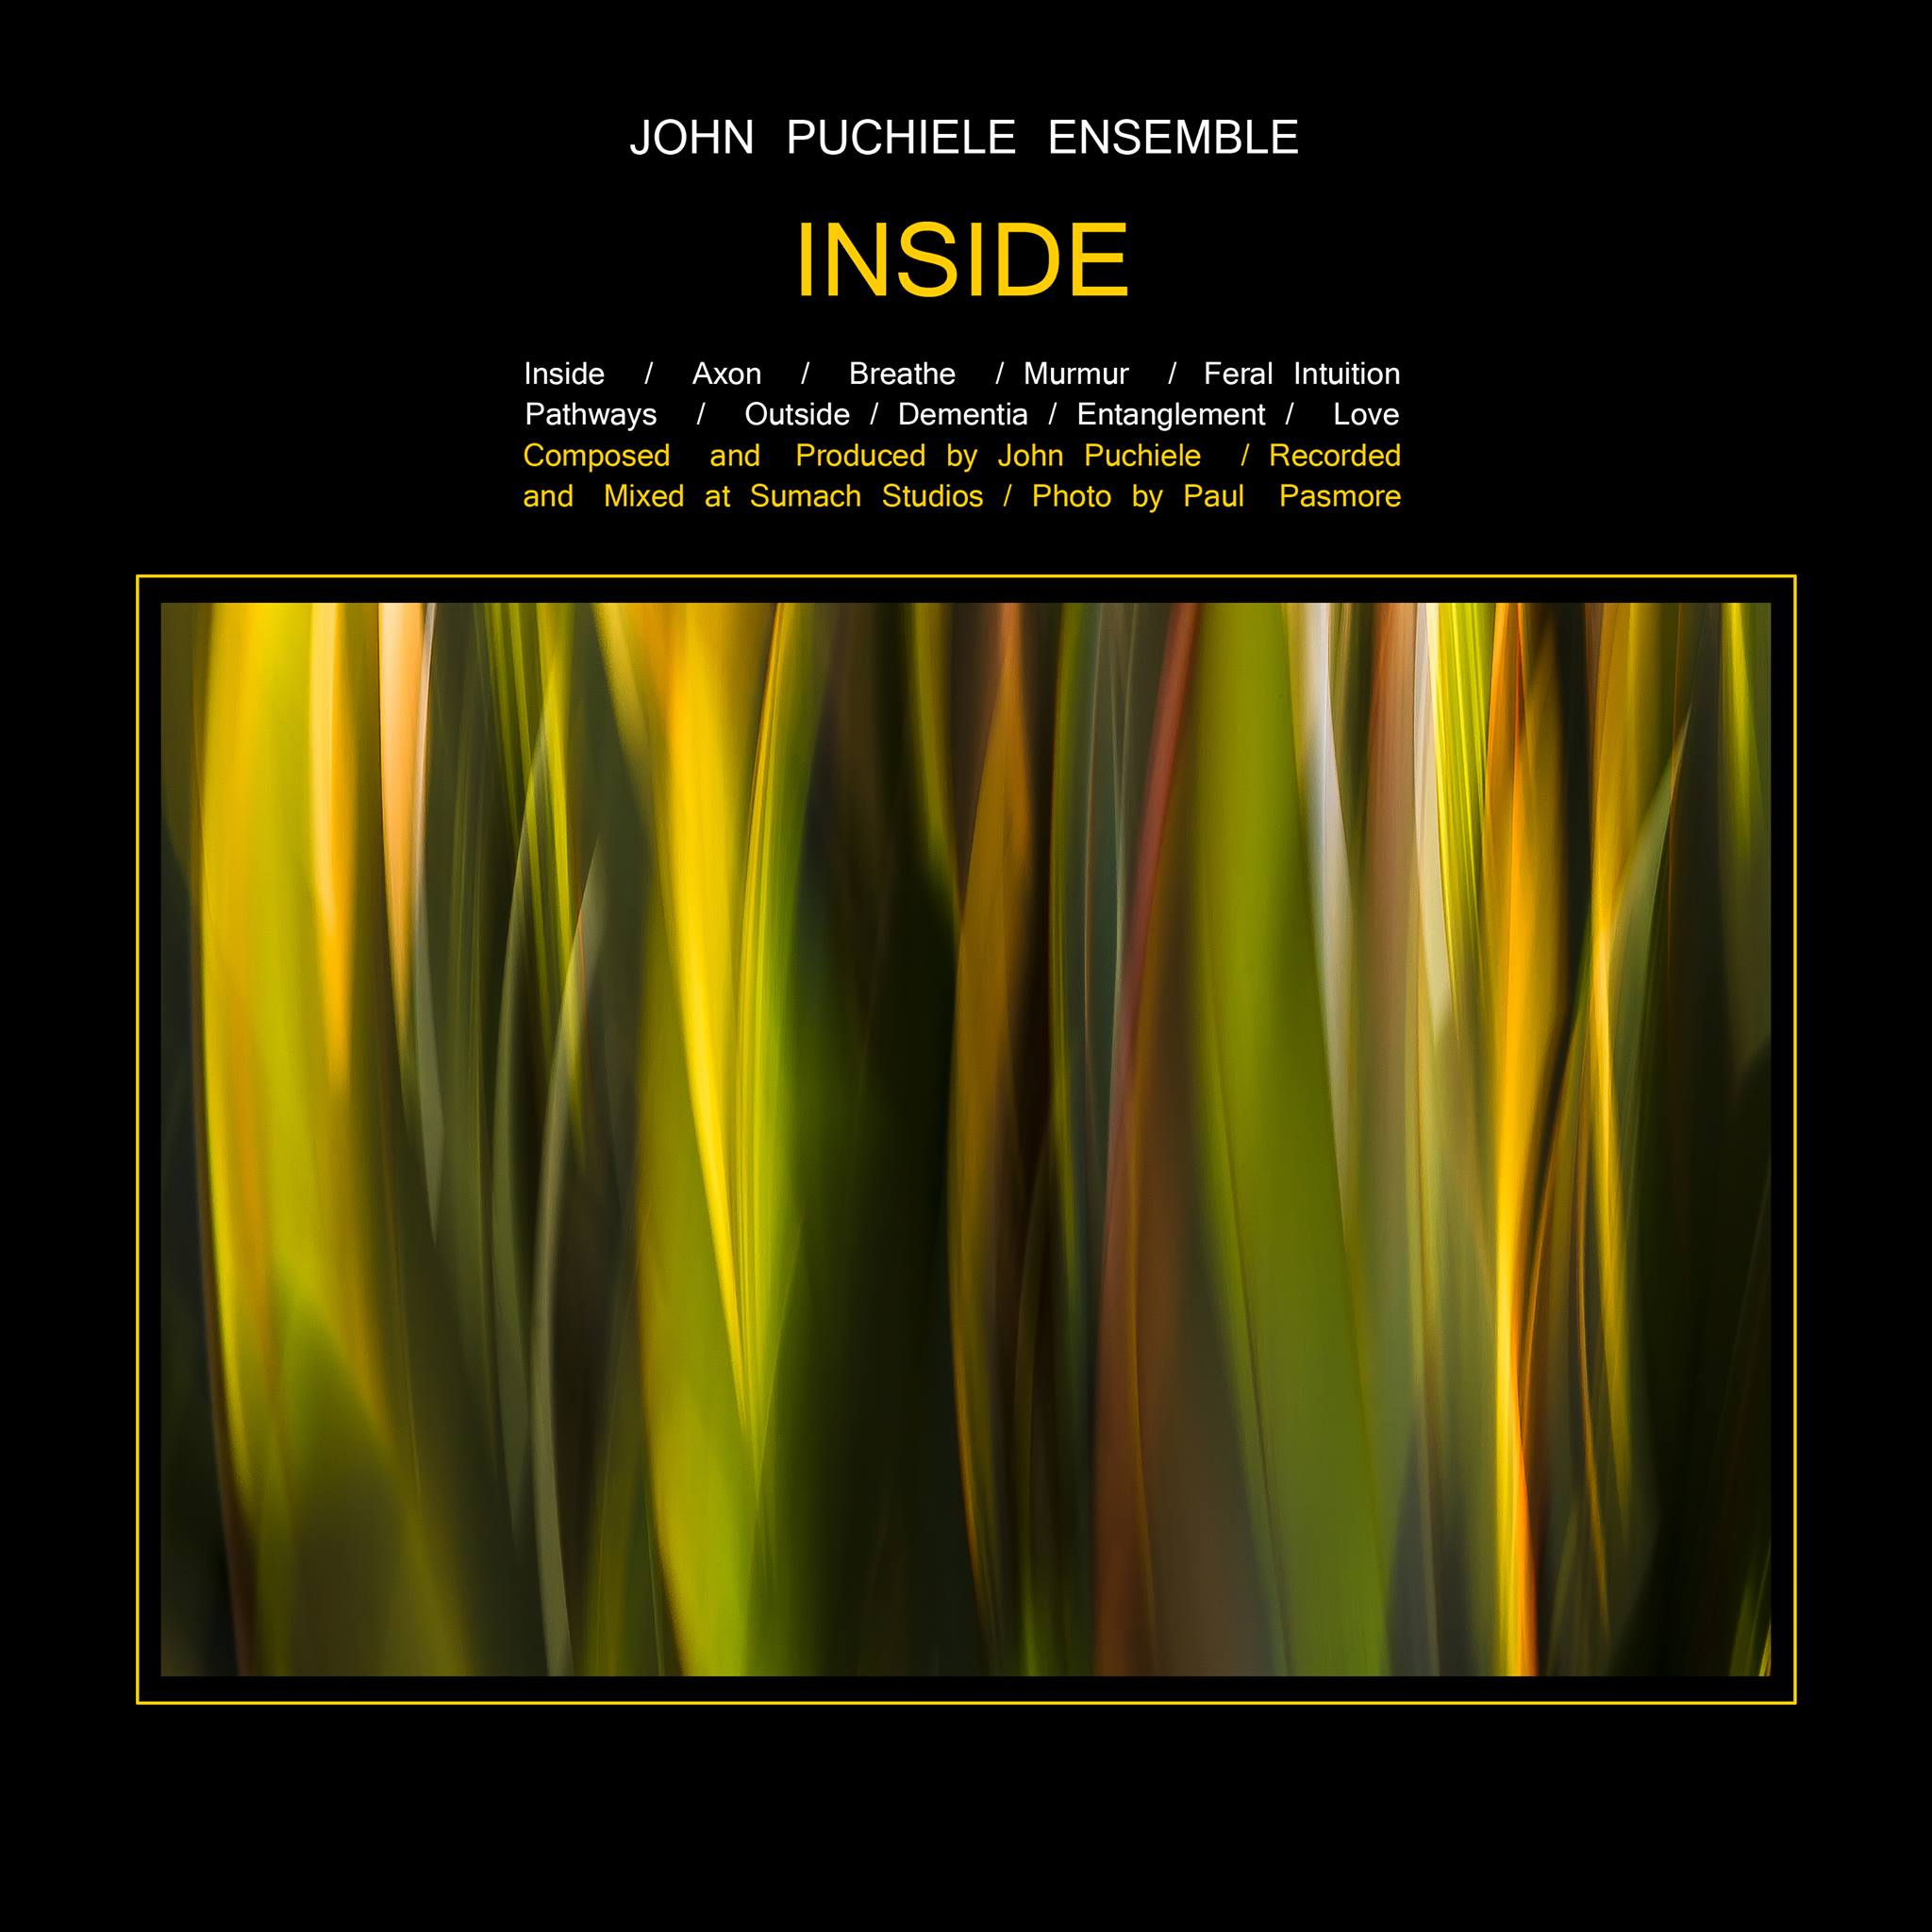 - I am honoured to have my image Limerence grace the cover of Toronto composer John Puchiele's new recording Inside. You can find out more info about his recording here :https://johnpuchieleensemble.bandcamp.com/